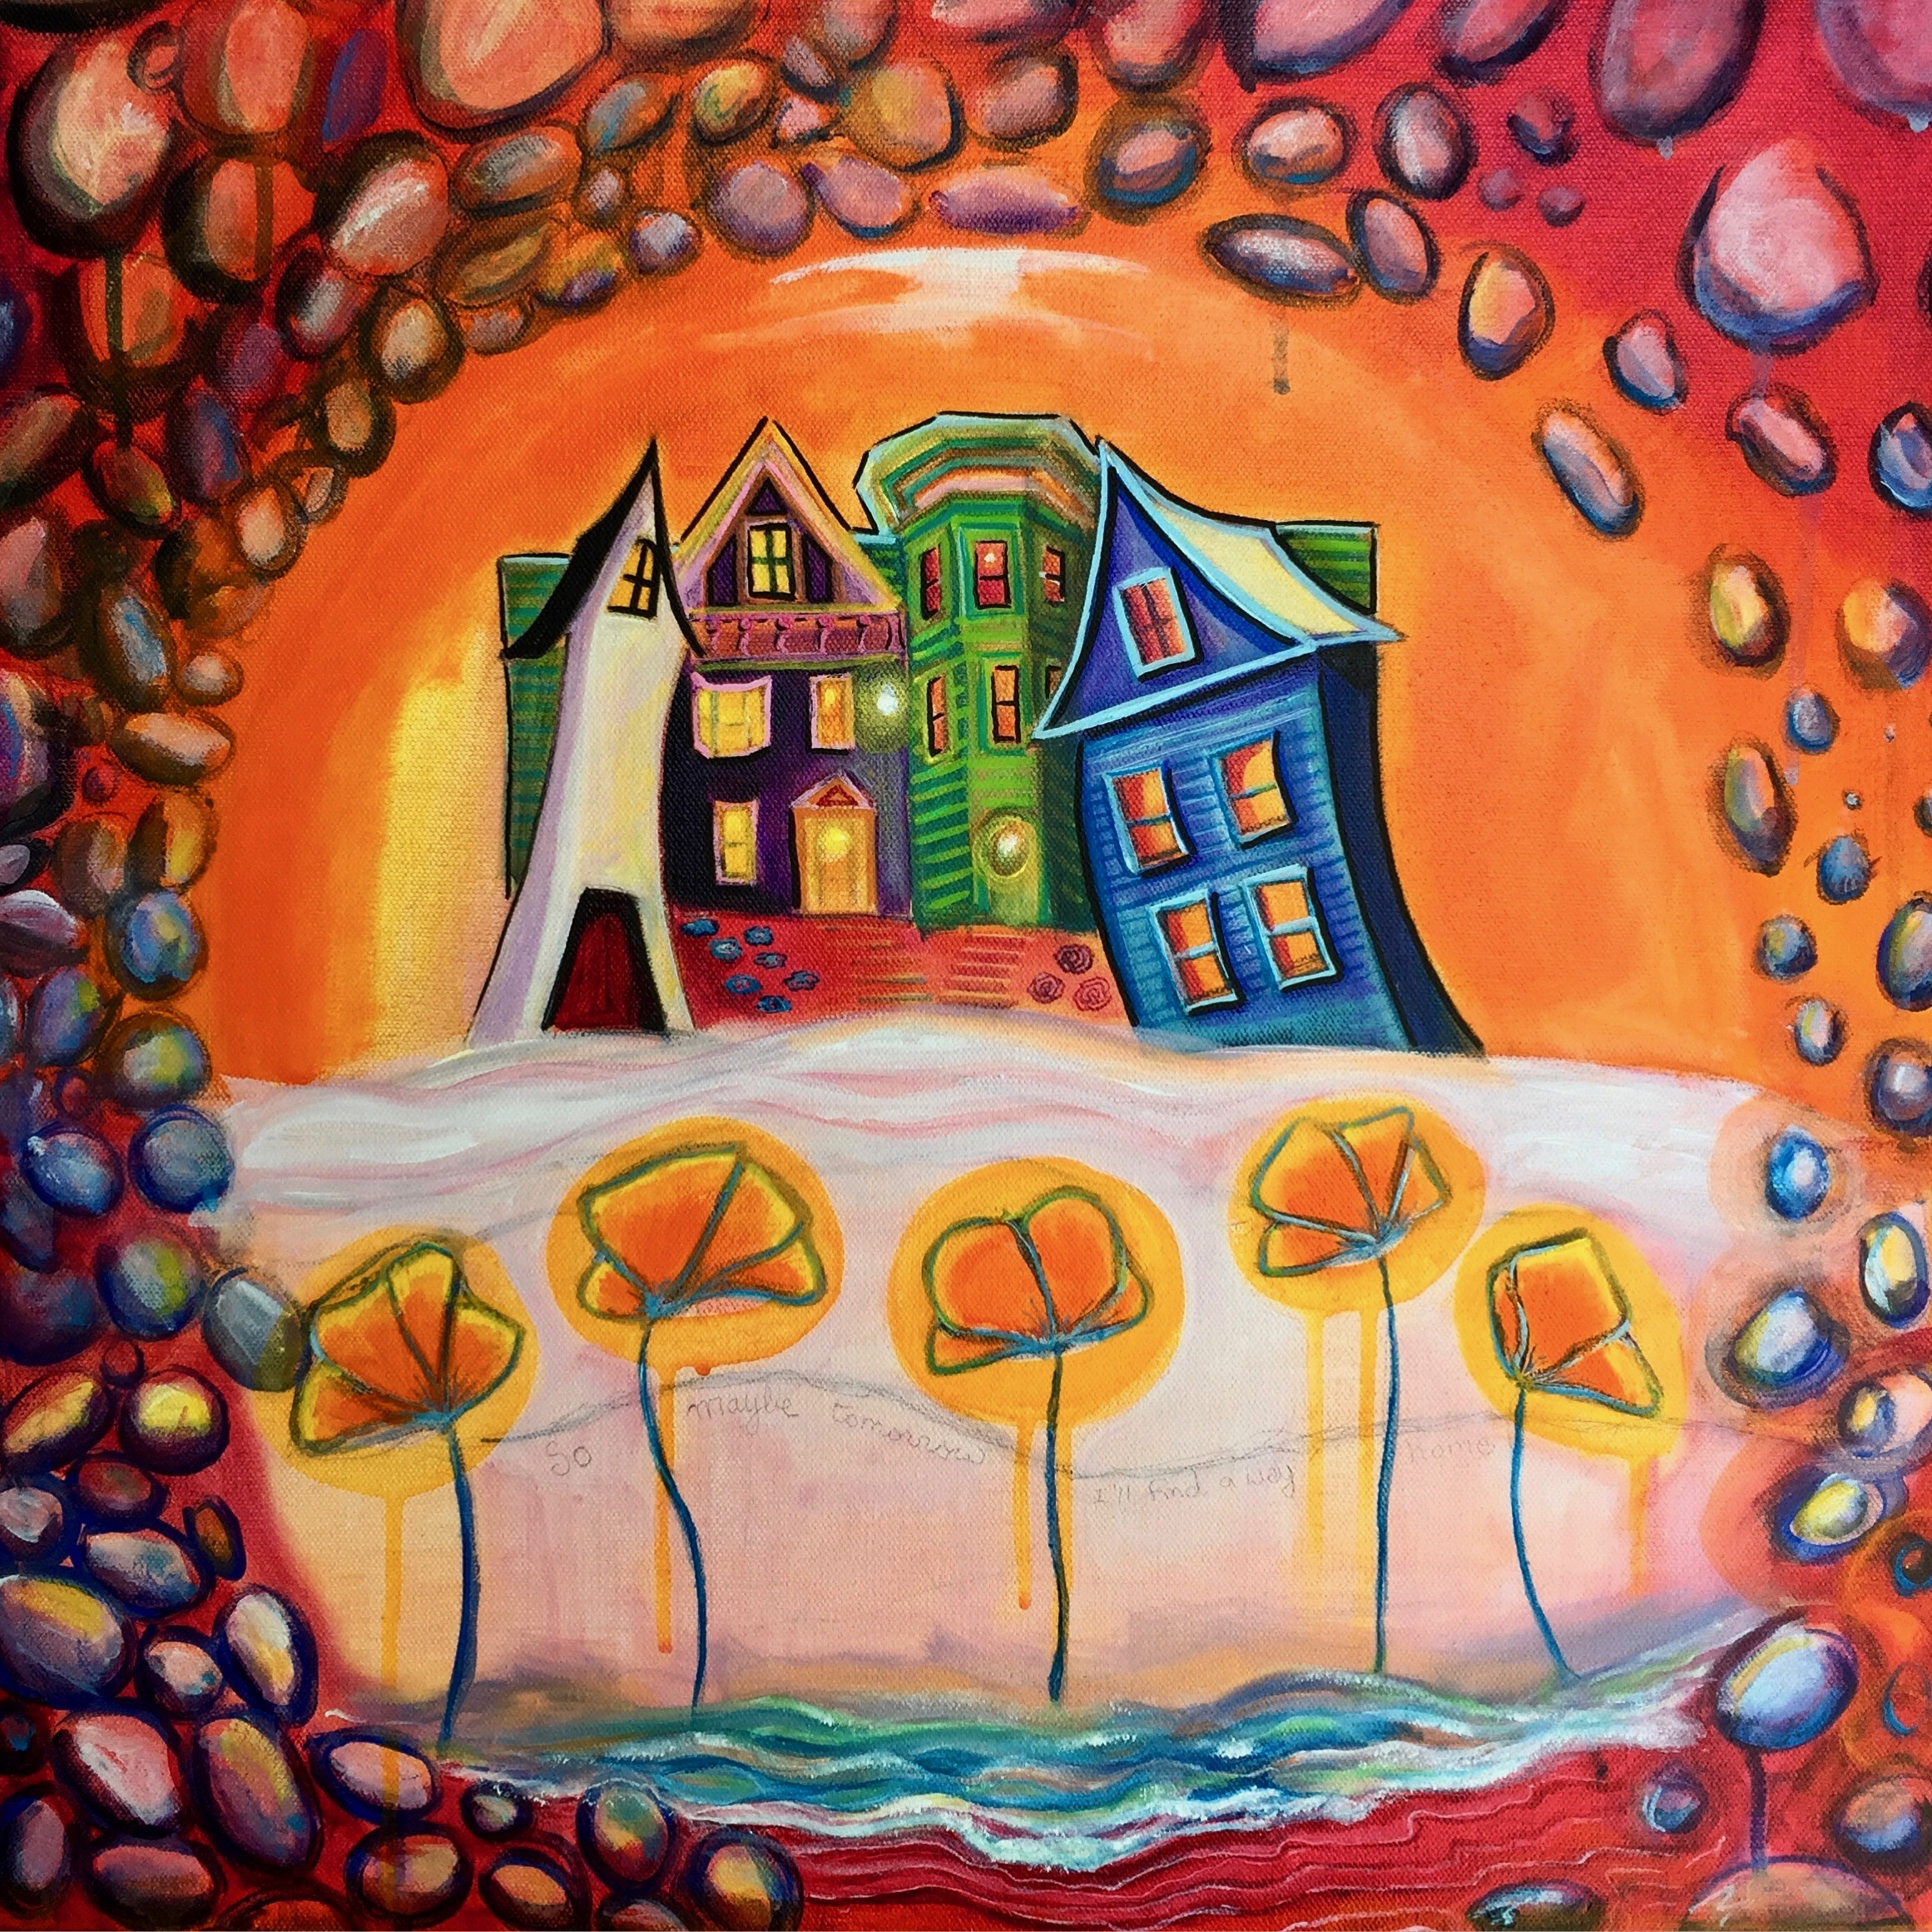 Finding my Way Home 20x20 $600